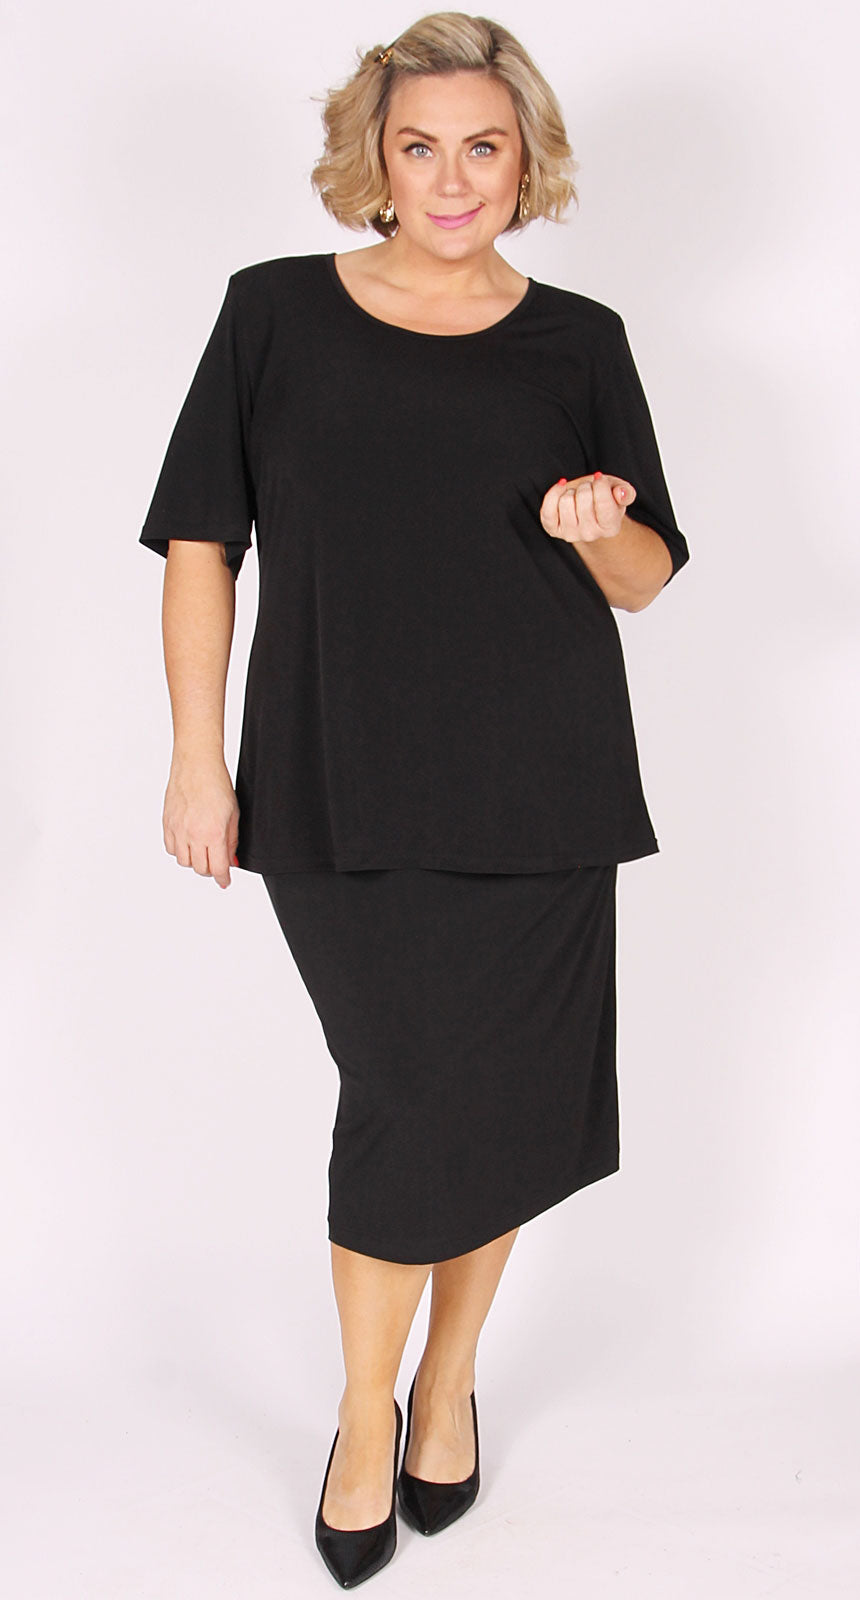 Lagos Mid-Length Knit Straight Skirt Black